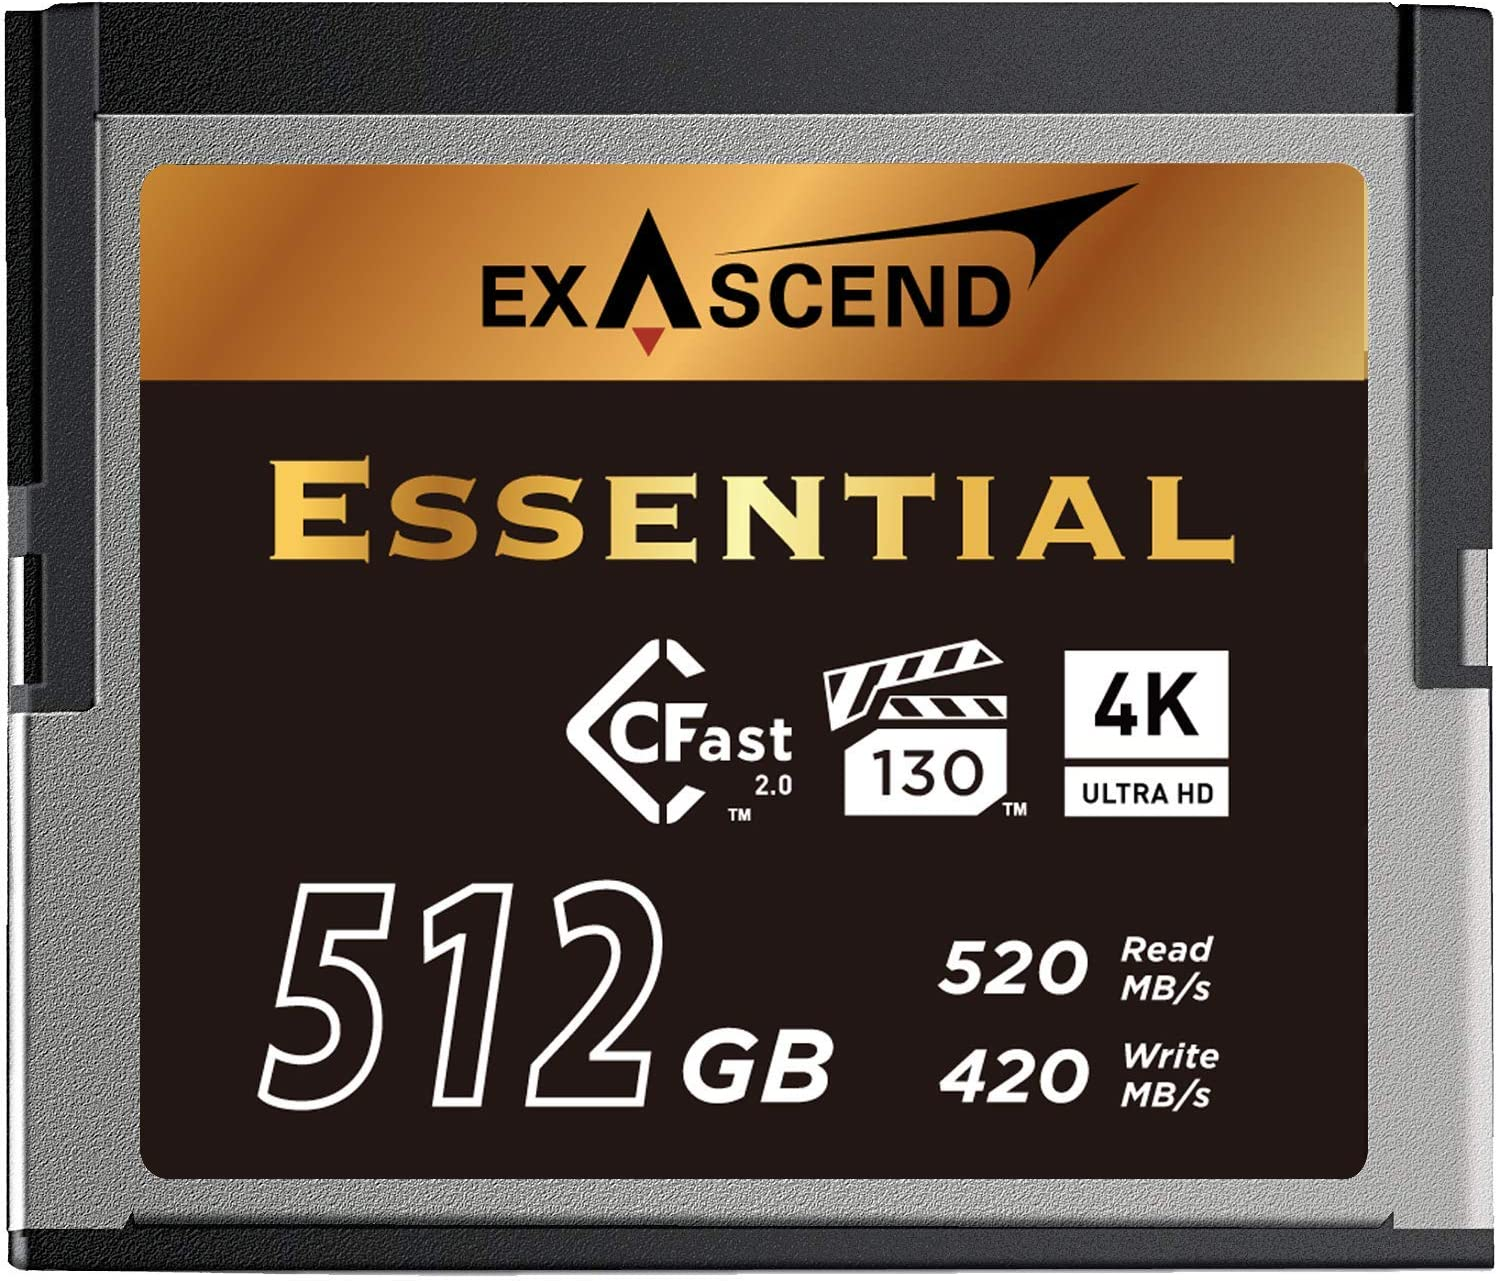 Exascend Essential 512GB CFast 2.0 Memory Card, up to 520MB/s, Certified for Blackmagic URSA Mini Pro 12K, Canon XC15/C300MKII, and More